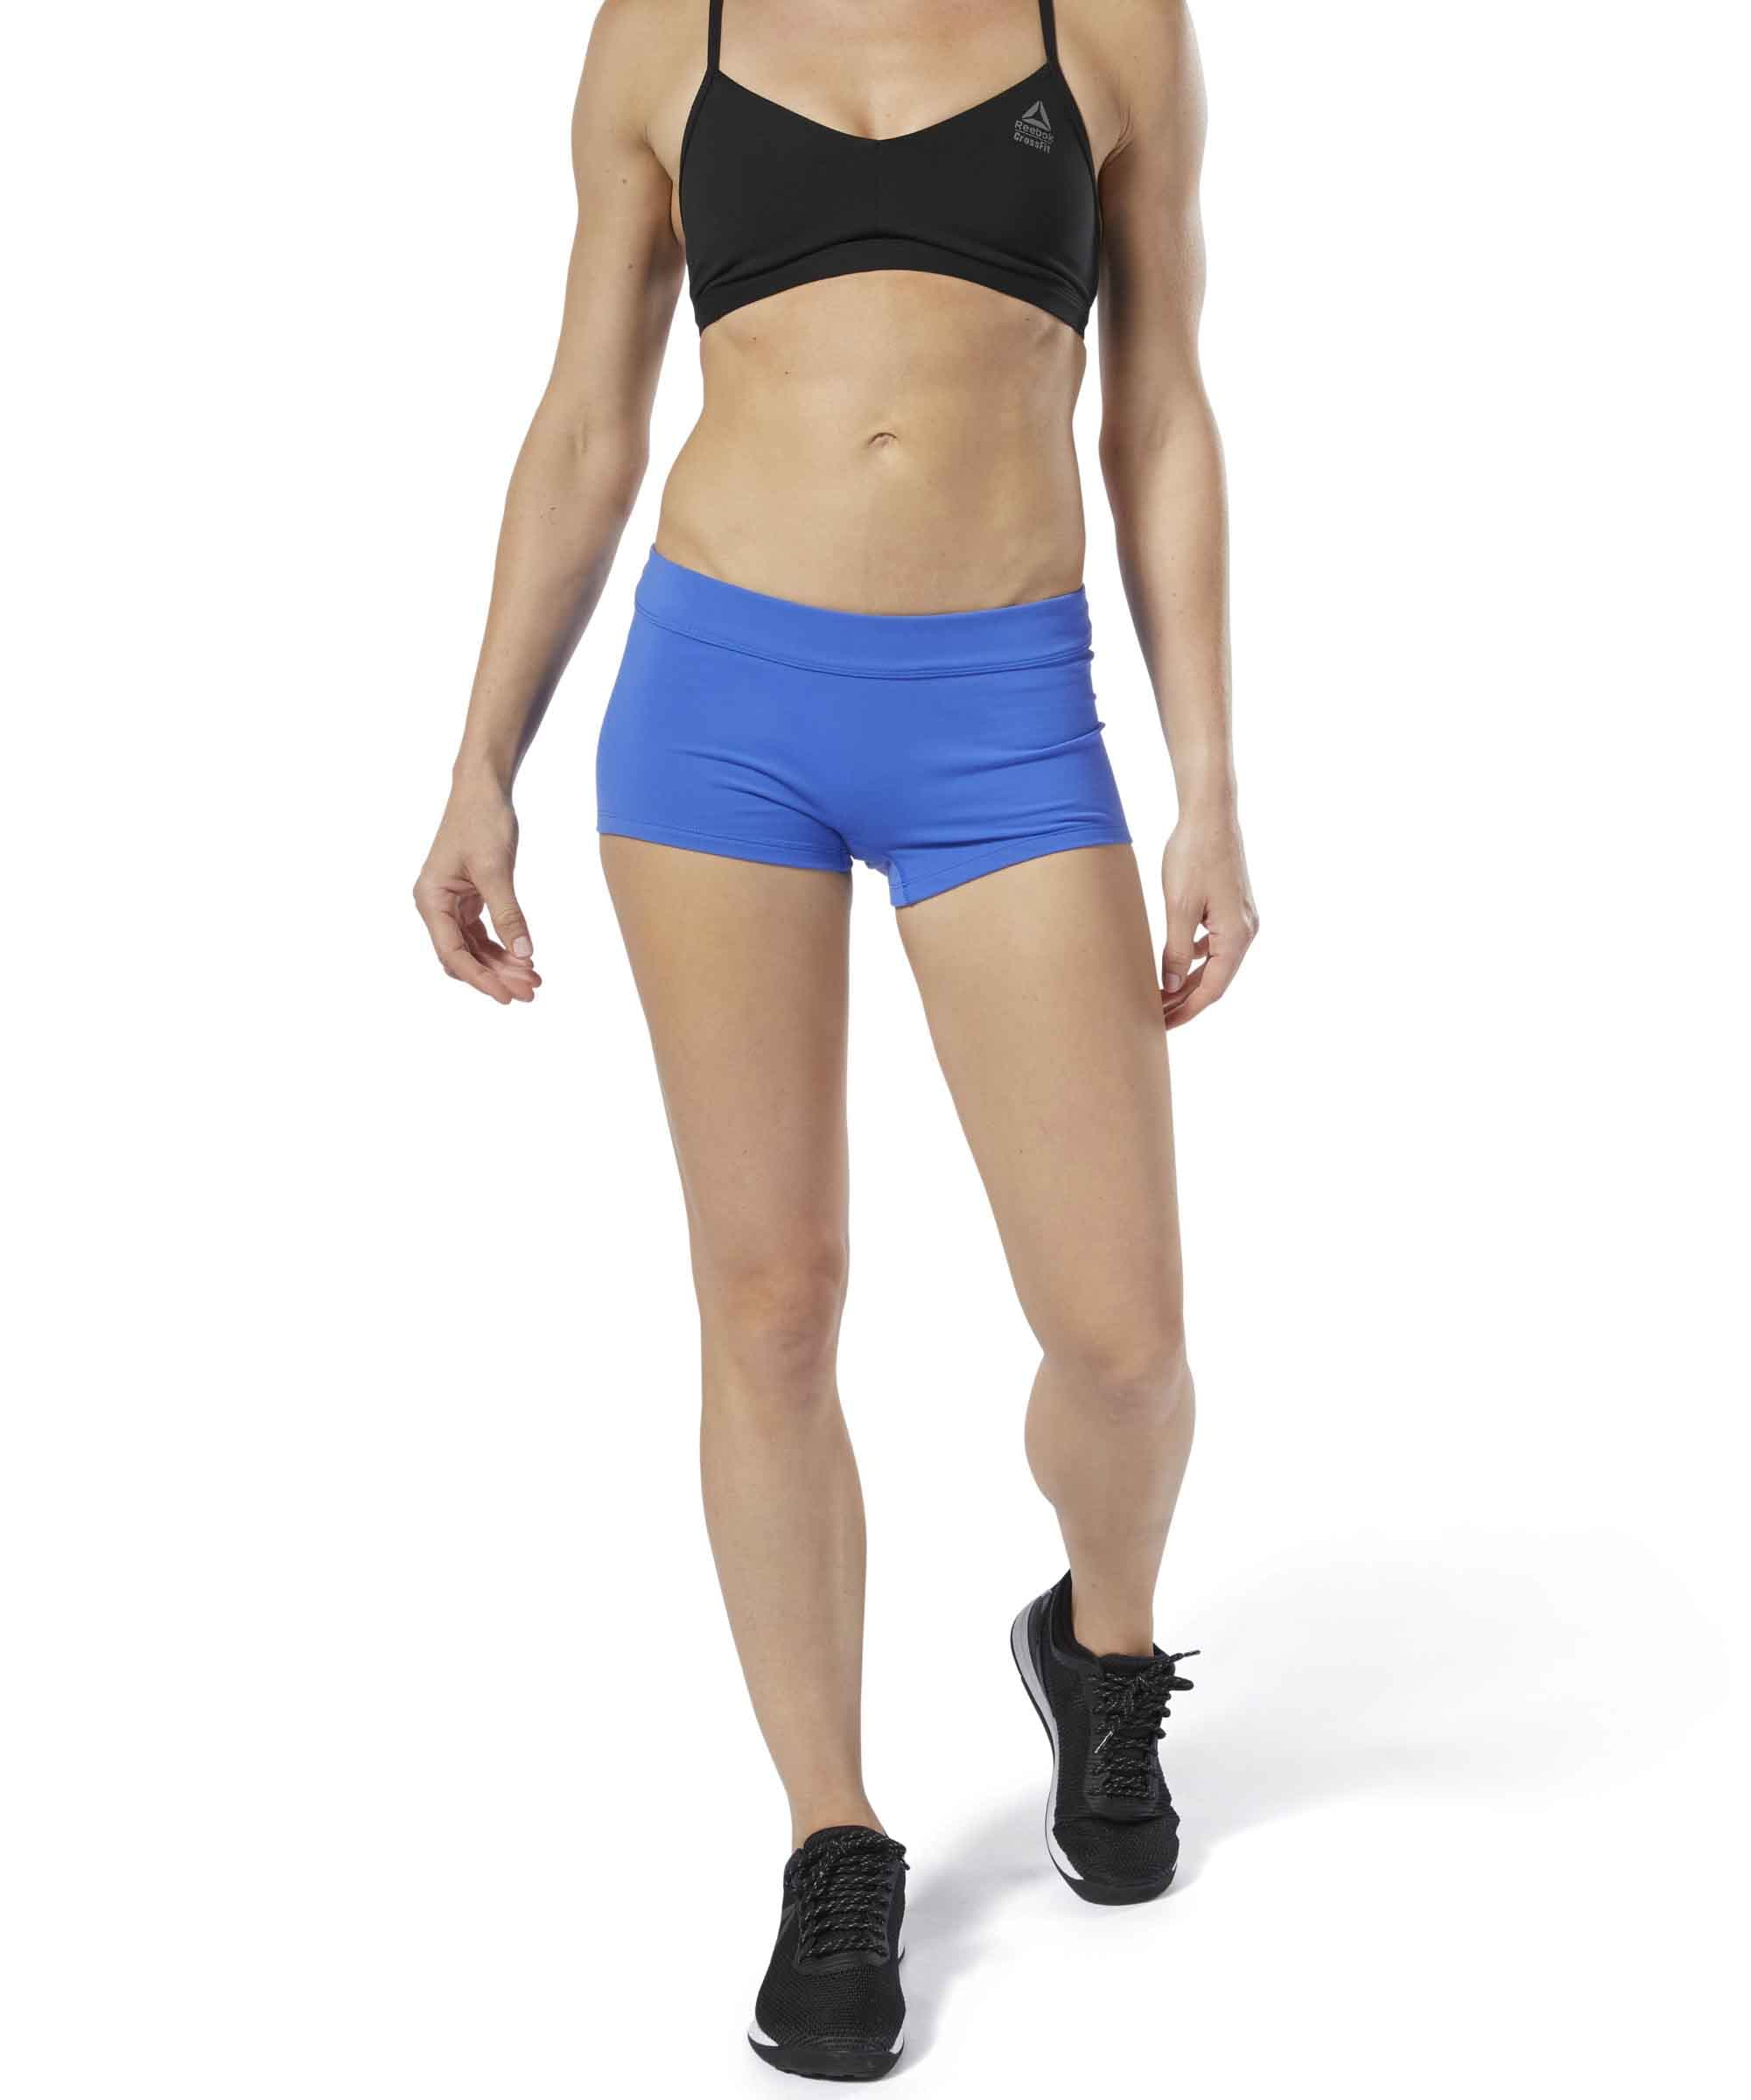 crossfit-shorts-chase-shortie-2